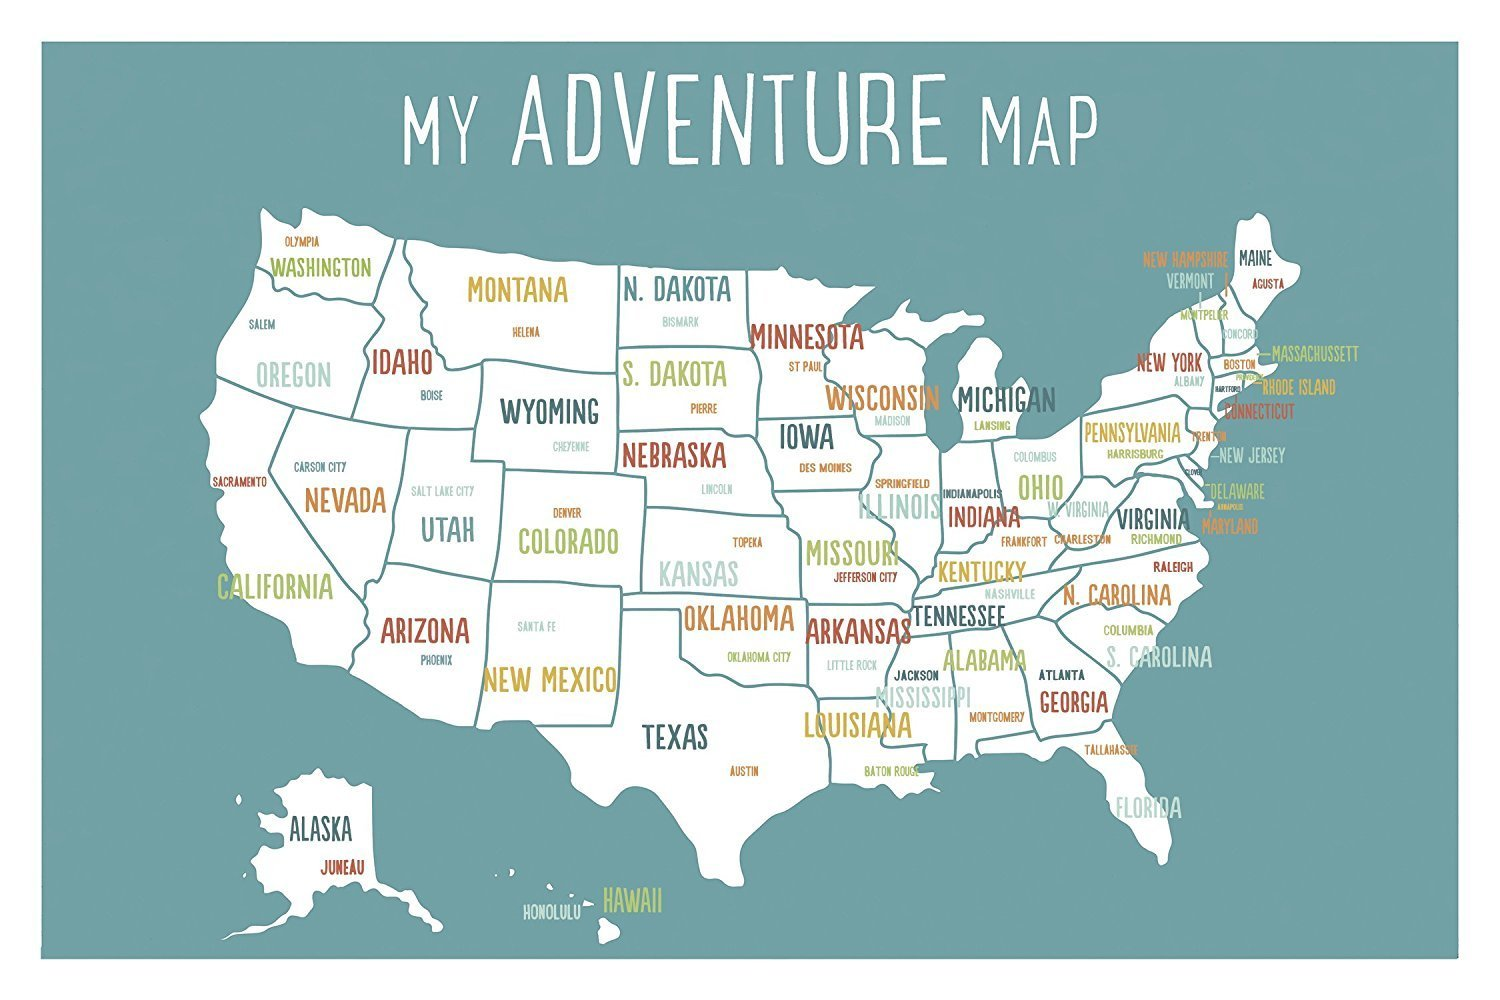 Cheap Usa Map Print, find Usa Map Print deals on line at ... on world map to print, nevada map to print, miami map to print, arizona map to print, jamaica map to print, belize map to print, katy trail map to print, united states print out, south carolina map to print, missouri map to print, denver map to print, seattle map to print, canada map to print, american revolution map to print, new york map to print, argentina map to print, wisconsin map to print, ukraine map to print, colorado map to print, nicaragua map to print,